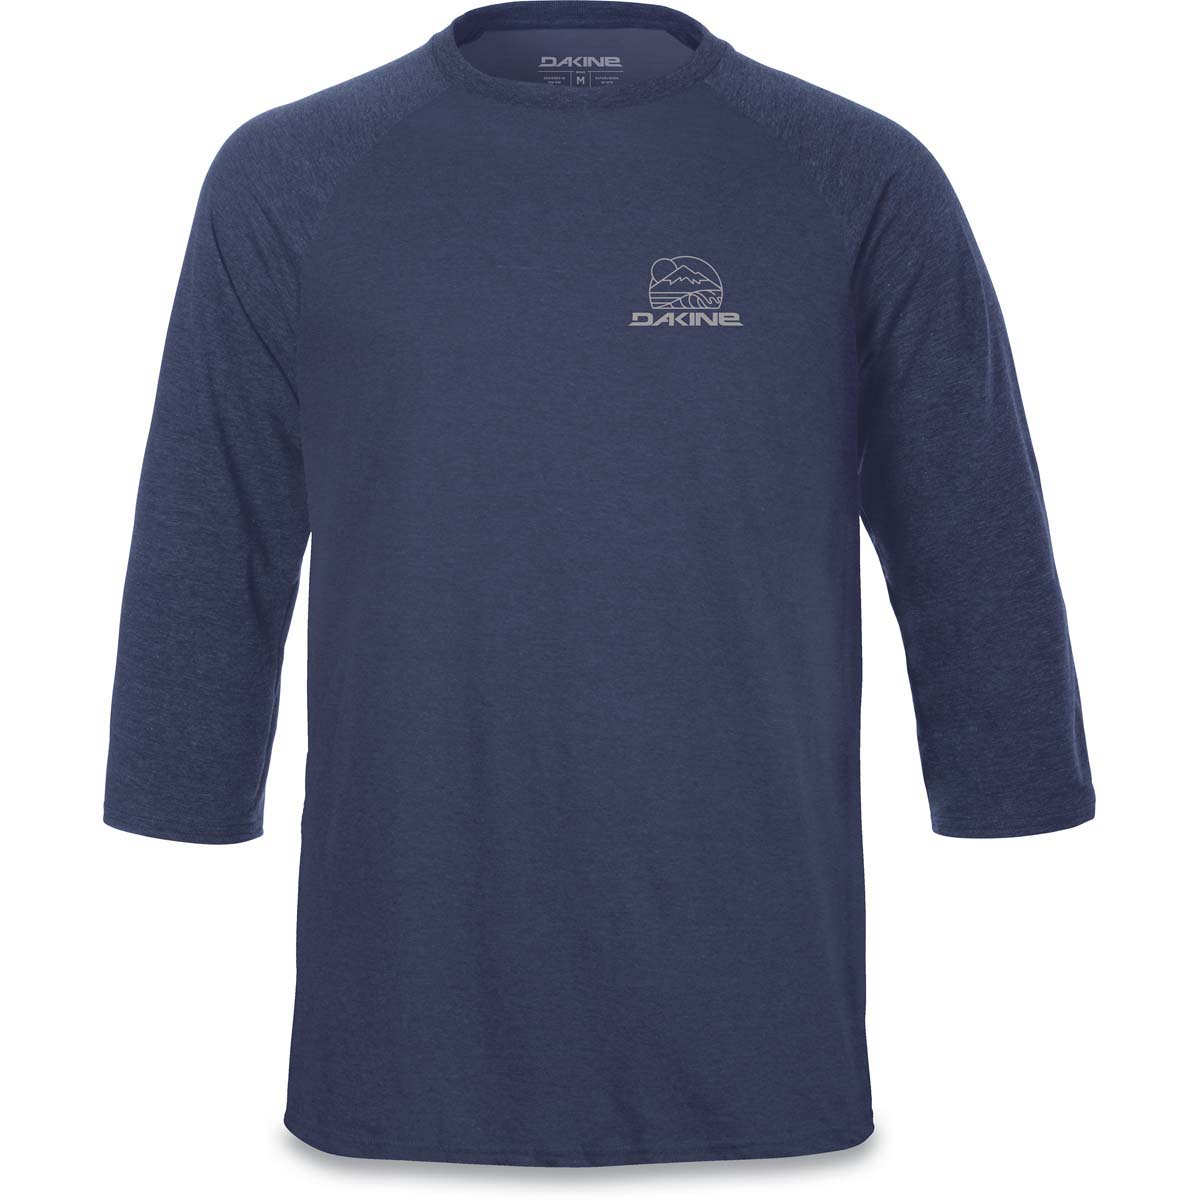 0afe4c109 Dakine Well Rounded 3/4 Raglan Tech T Shirt Heather Navy | Dakine Shop